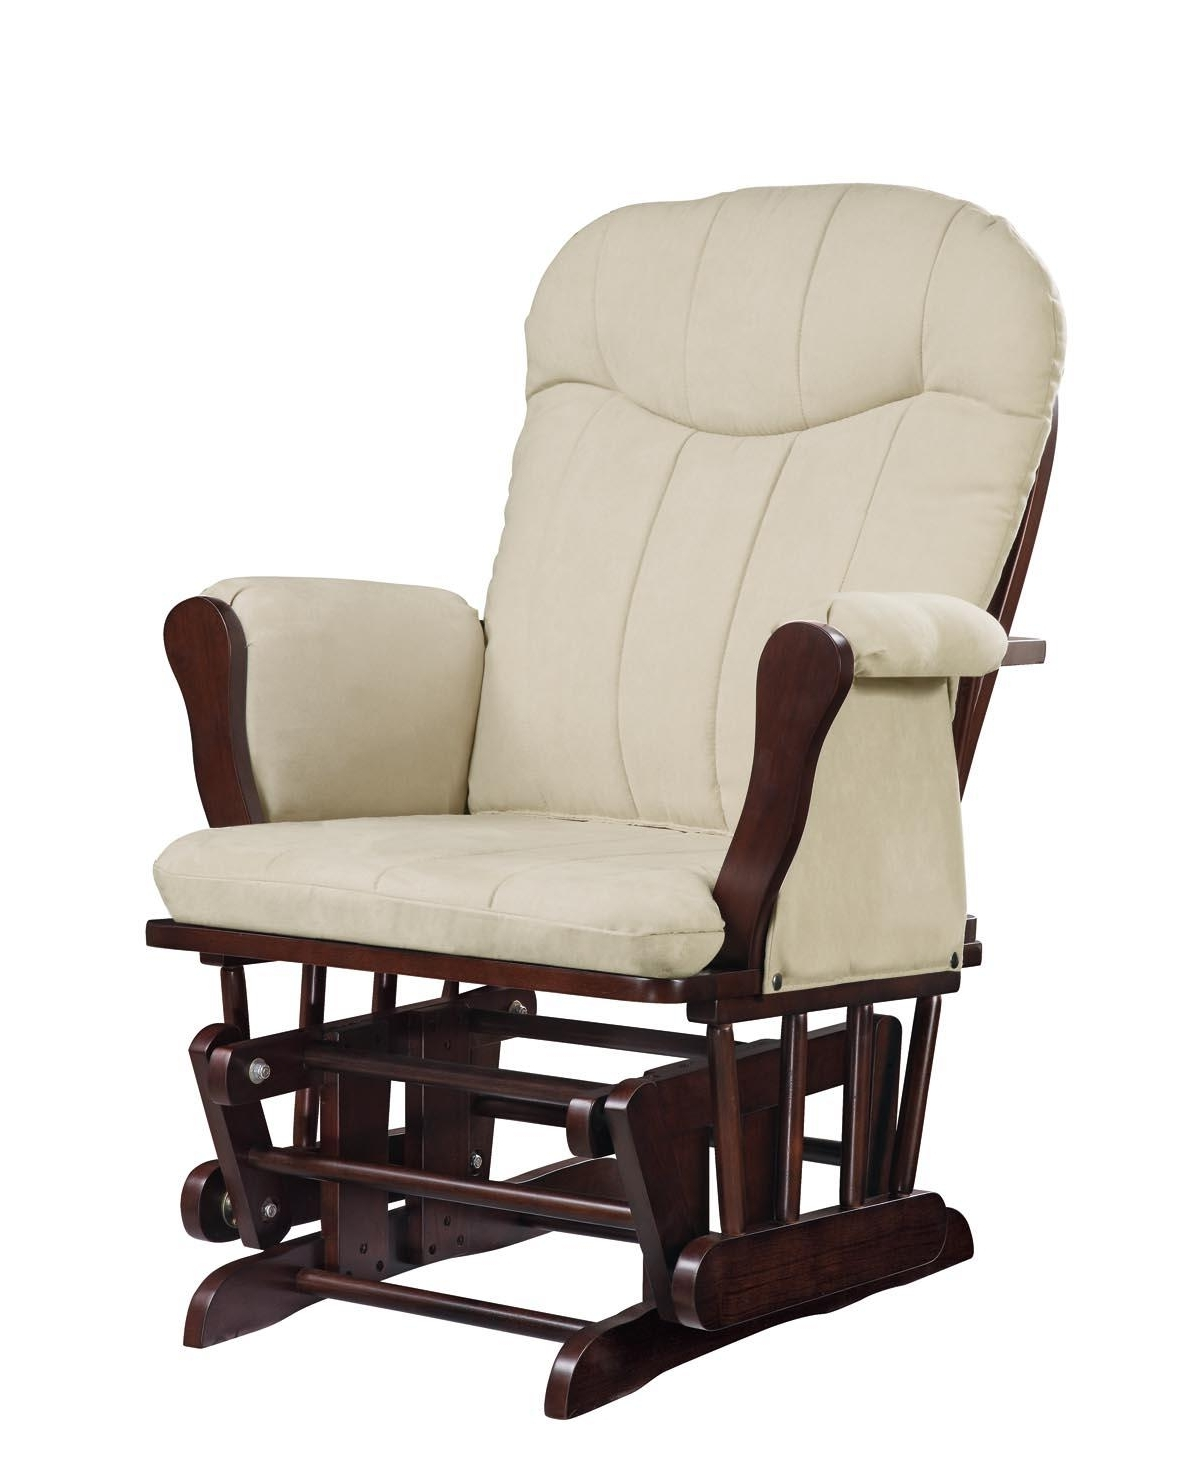 ikea rocking chairs ergonomic chair upper back pain 20 best ideas of arm wood frame glider throughout famous